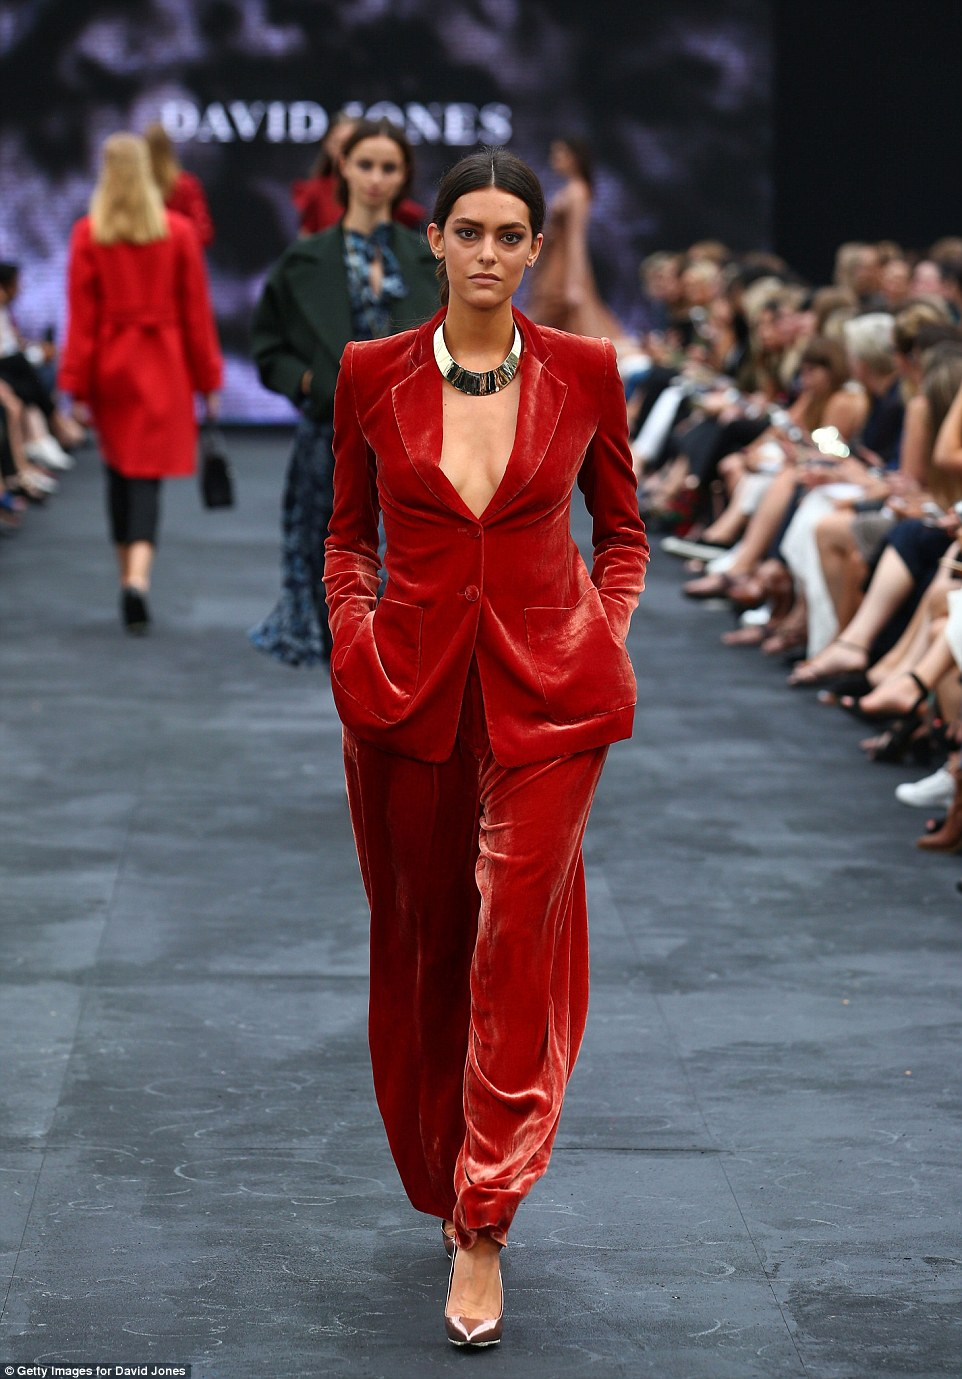 One striking ensemble by Bianca Spender featured a stunning red velvet suit with a daring neckline, paired with a chunky metallic necklace.   Photo